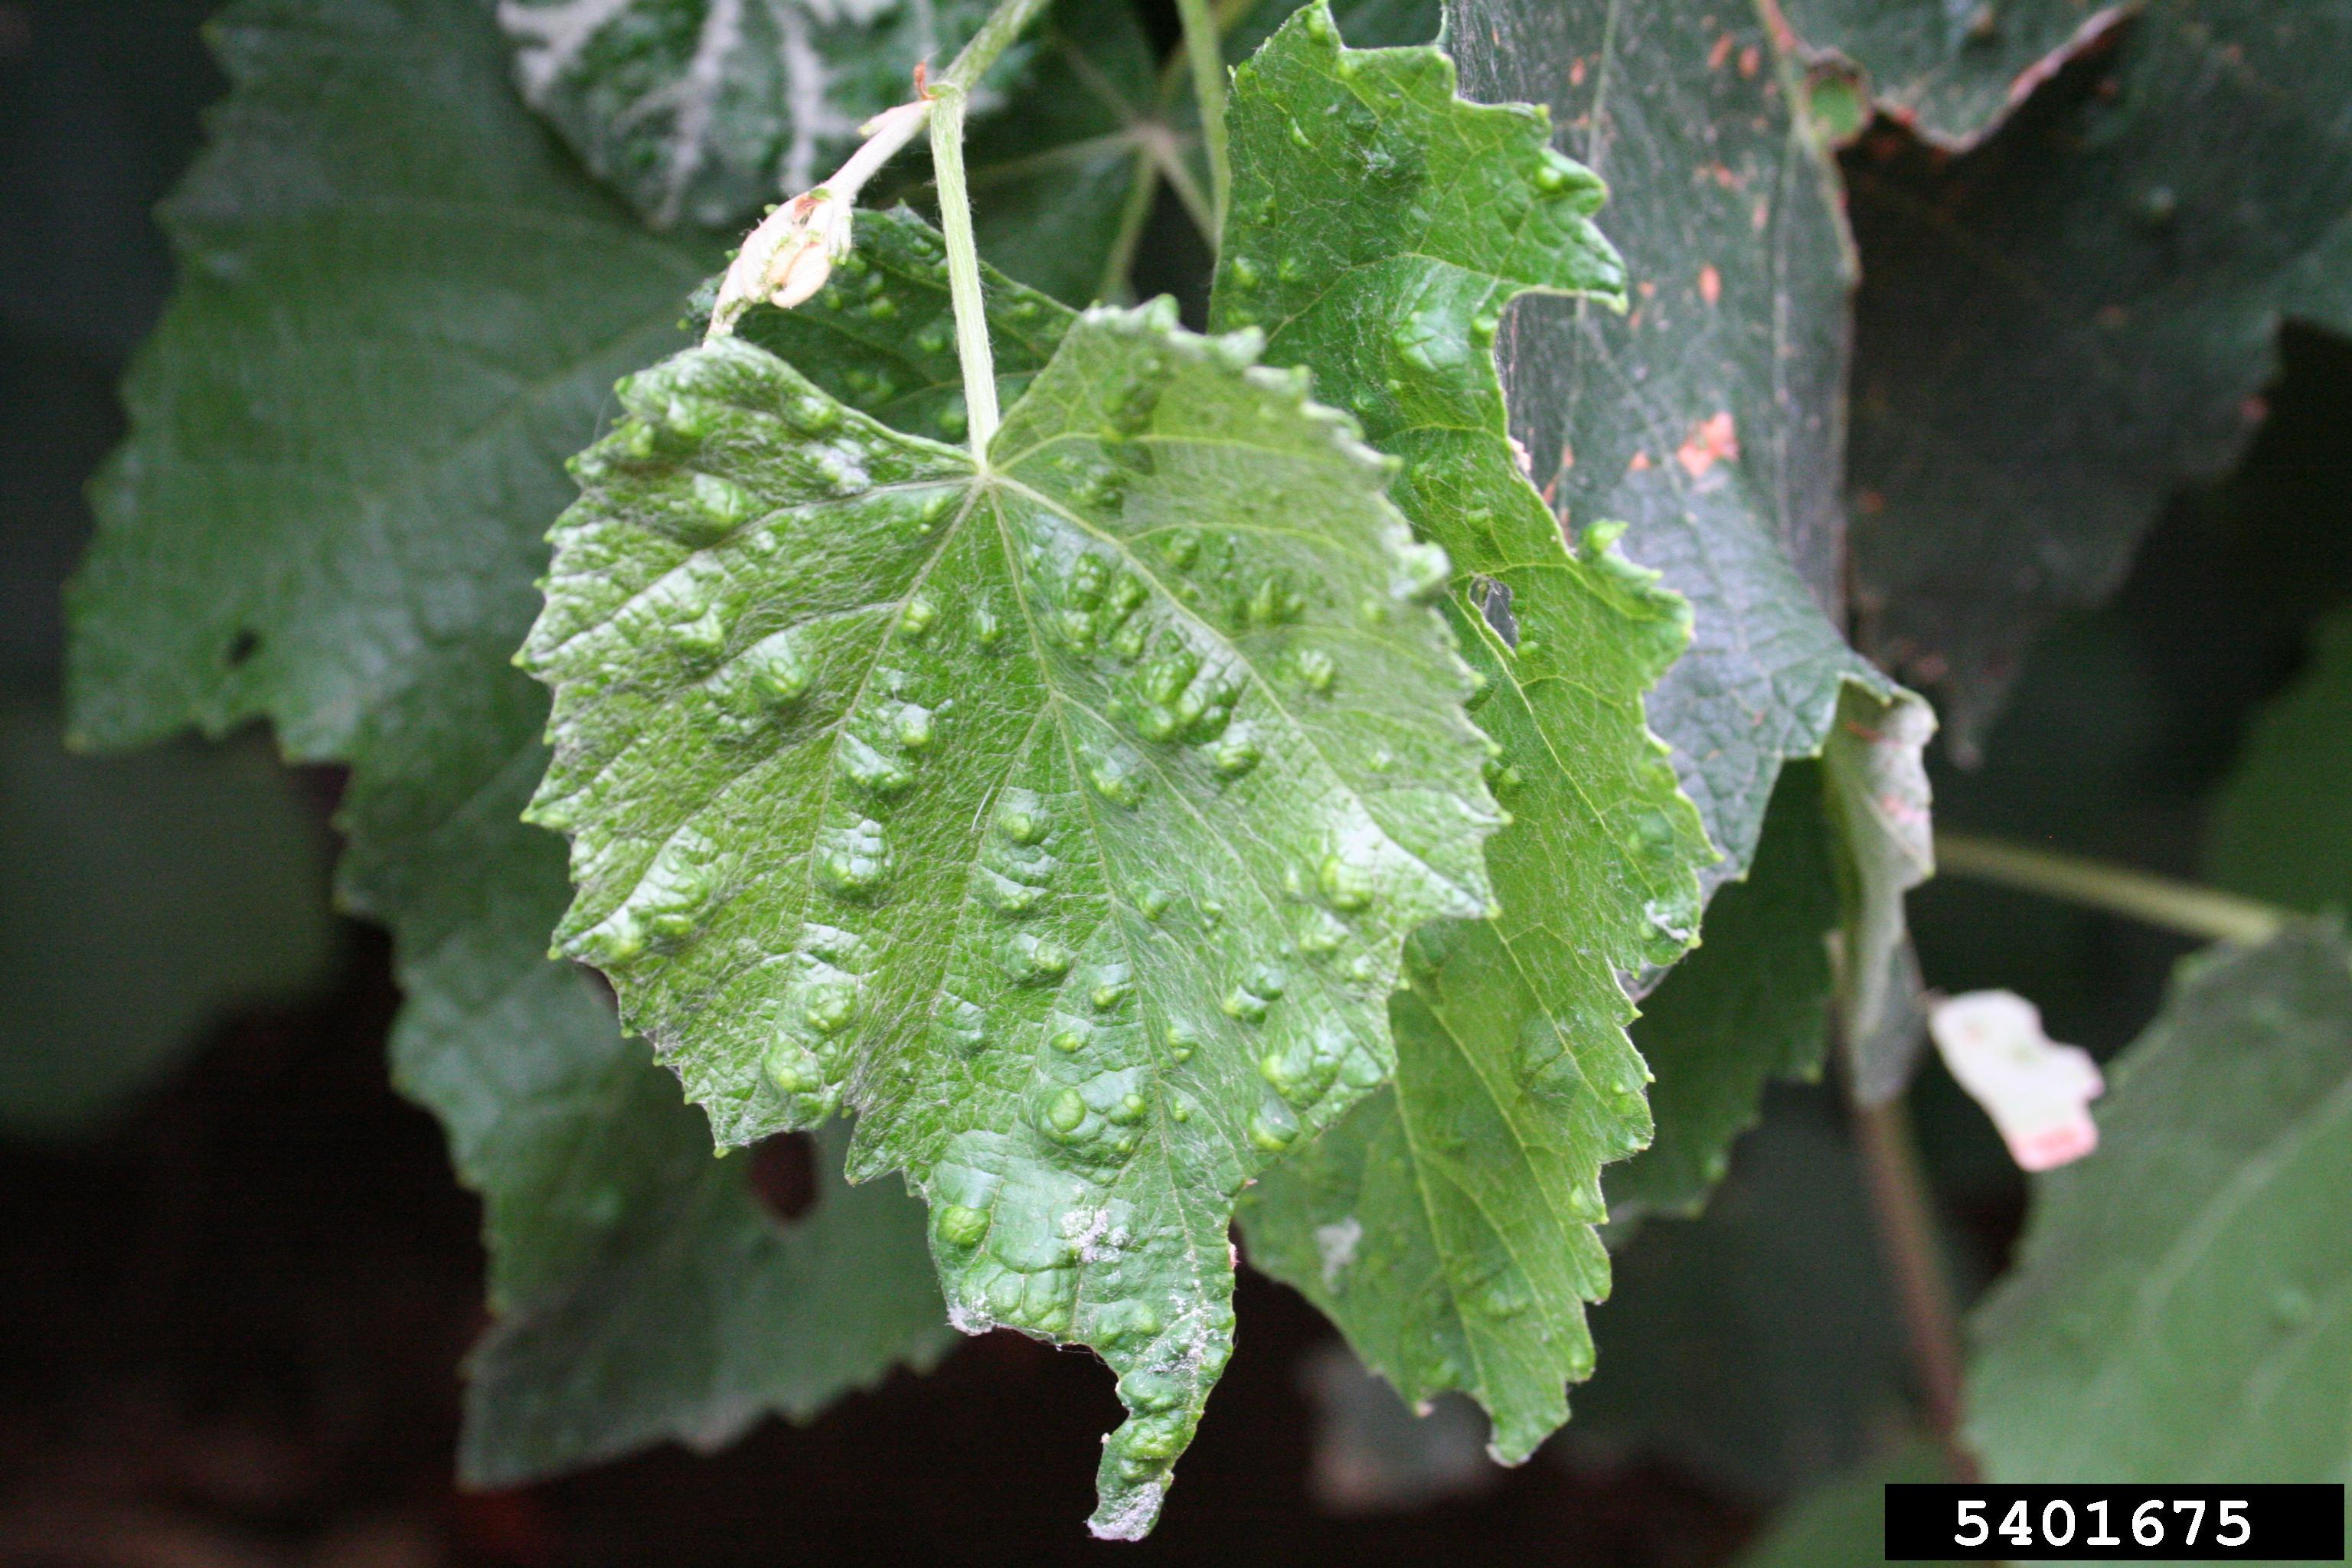 Bumps on grape leaves